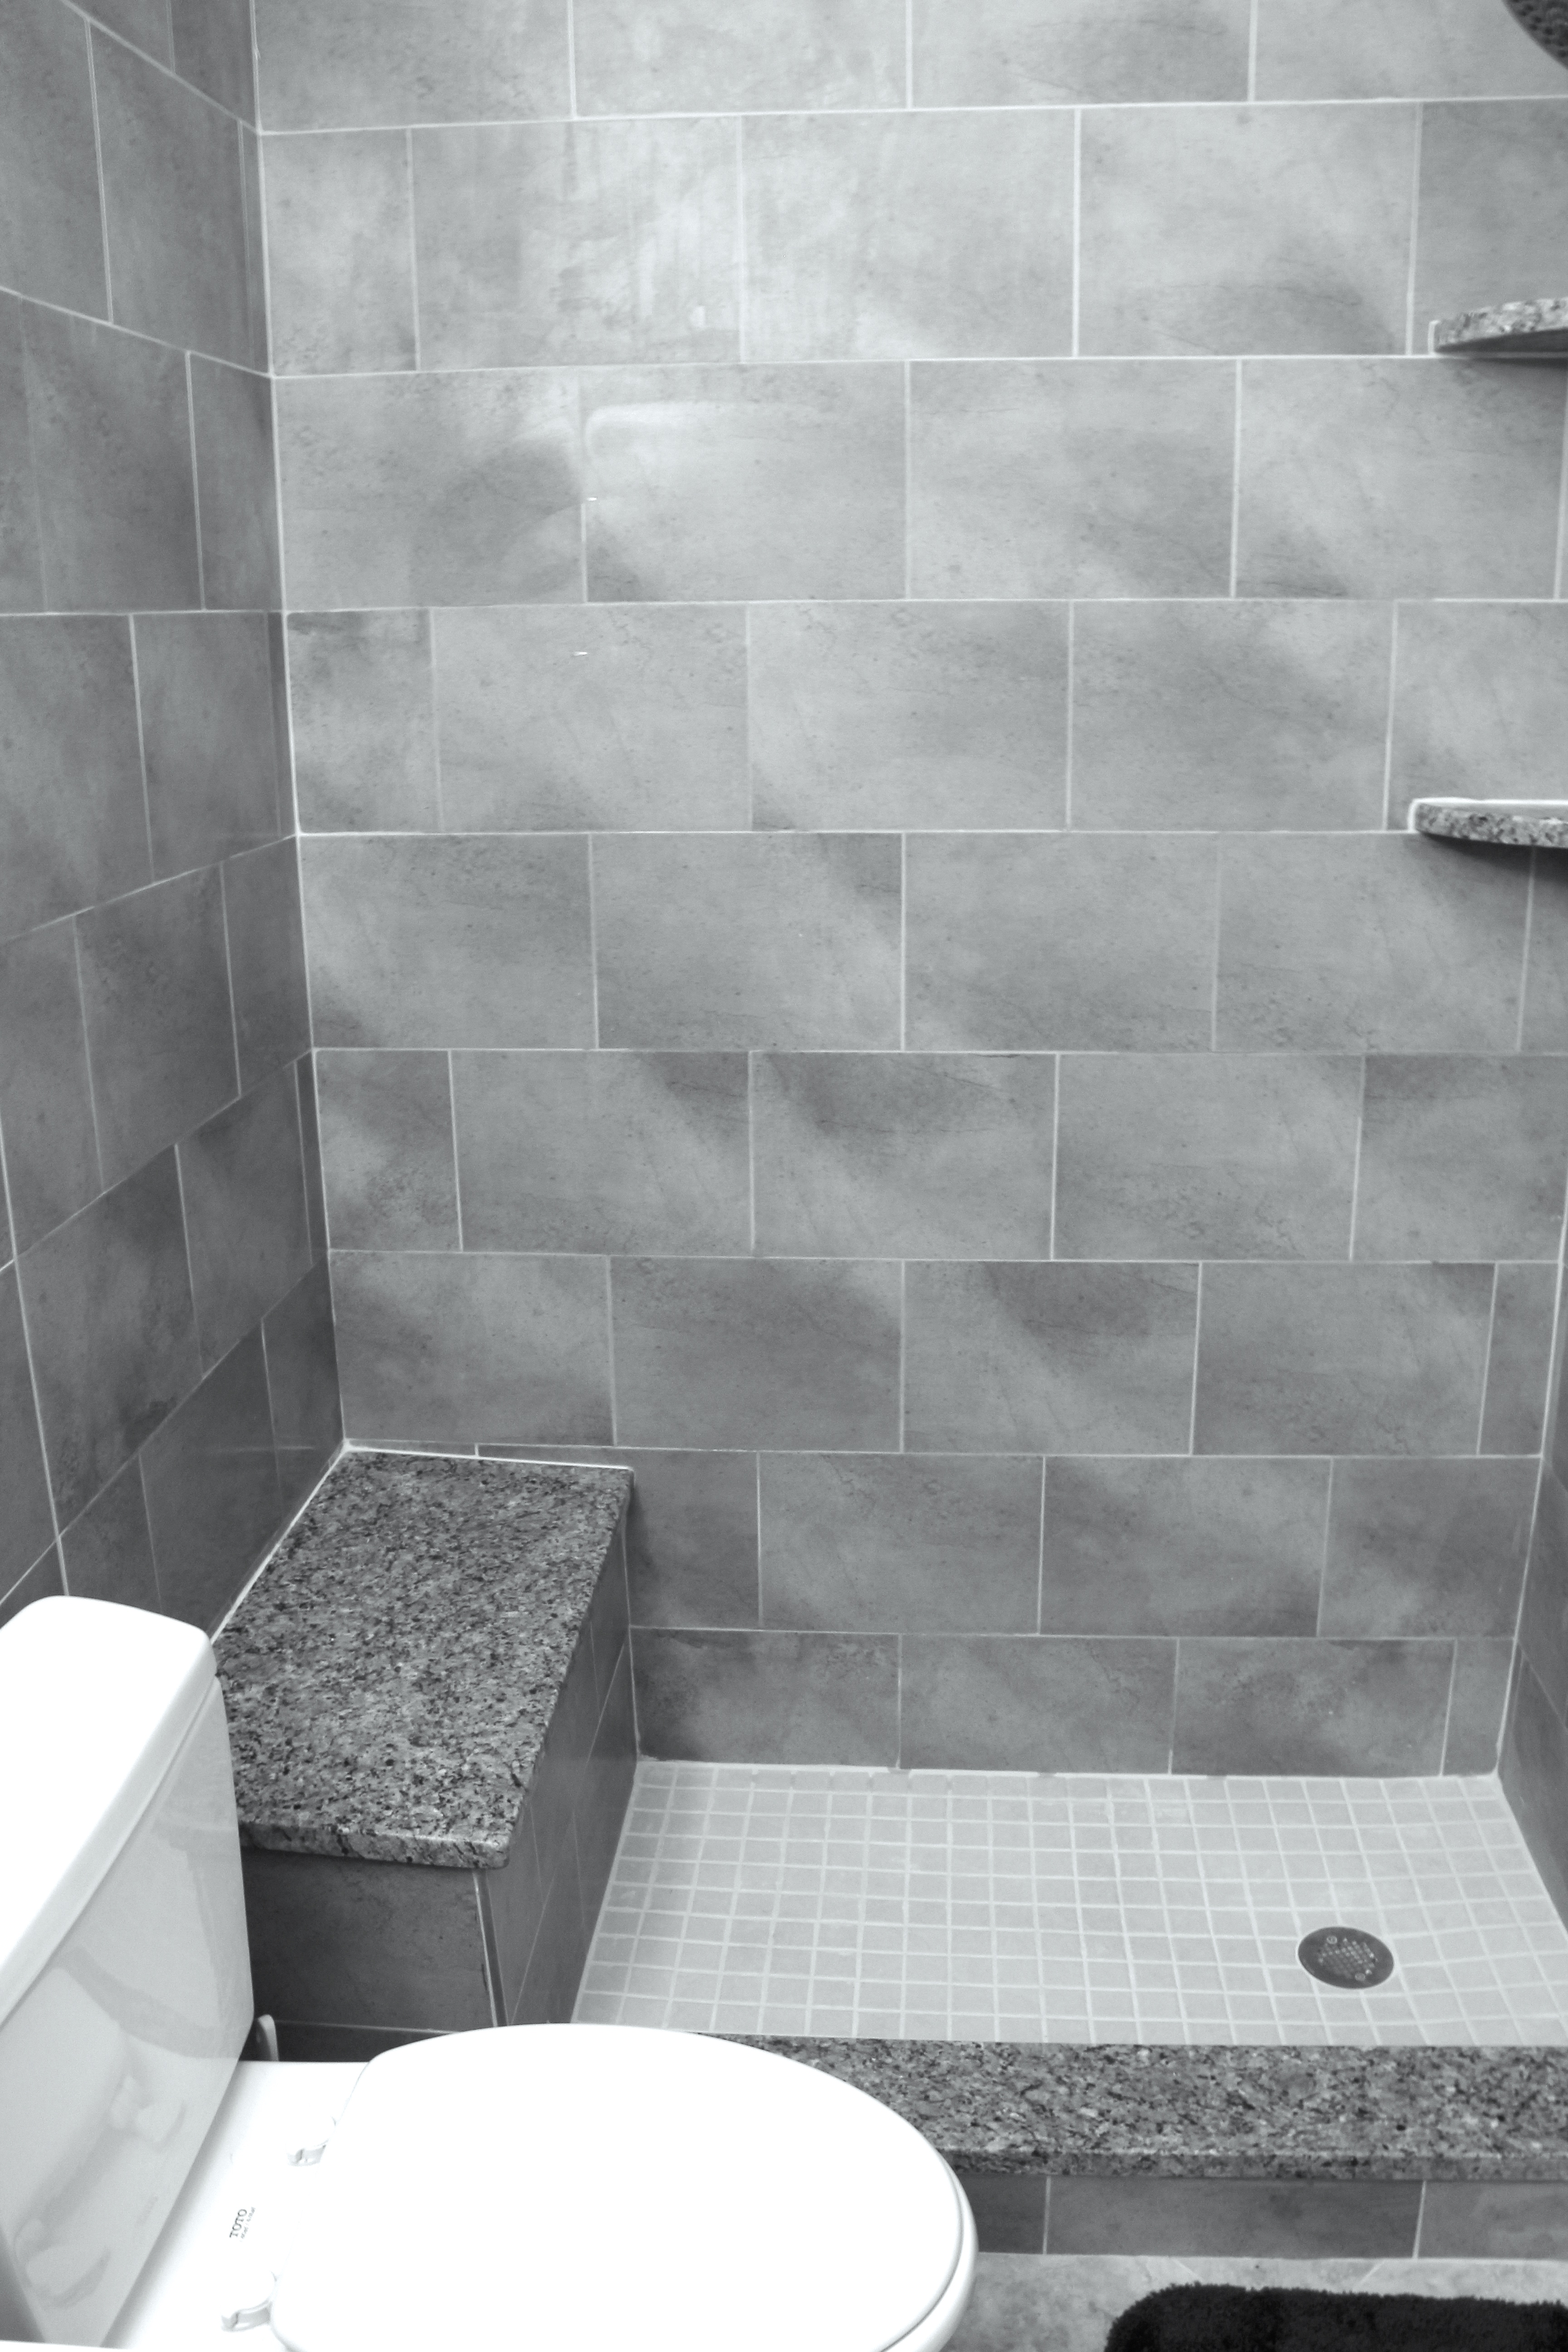 Services | Bathrooms by Design - Bathroom Renovation, Remodeling ...